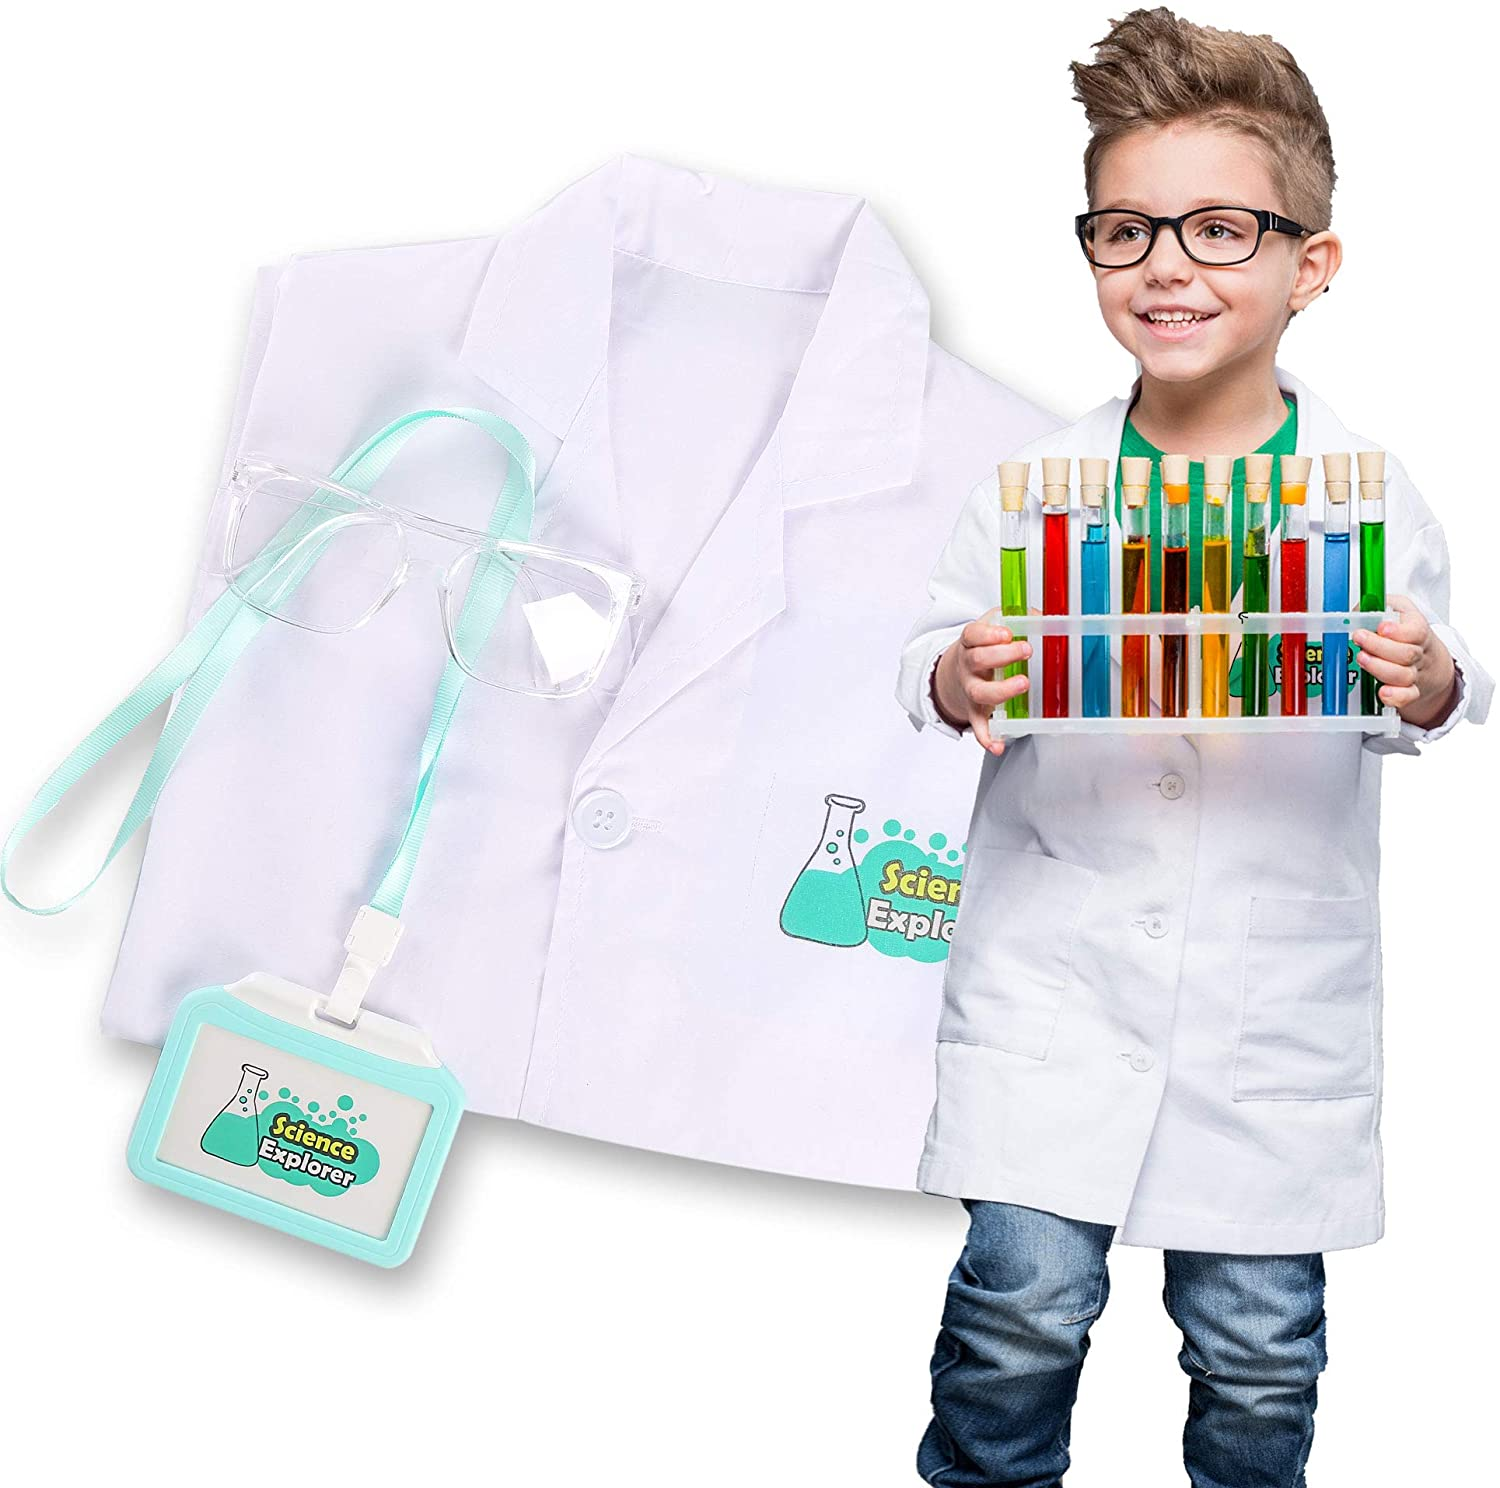 Lab Coat for Kids Scientist Costume Childrens Role Play Set Pretend Play with Goggle and Personalized ID Card, Age 4-8 White